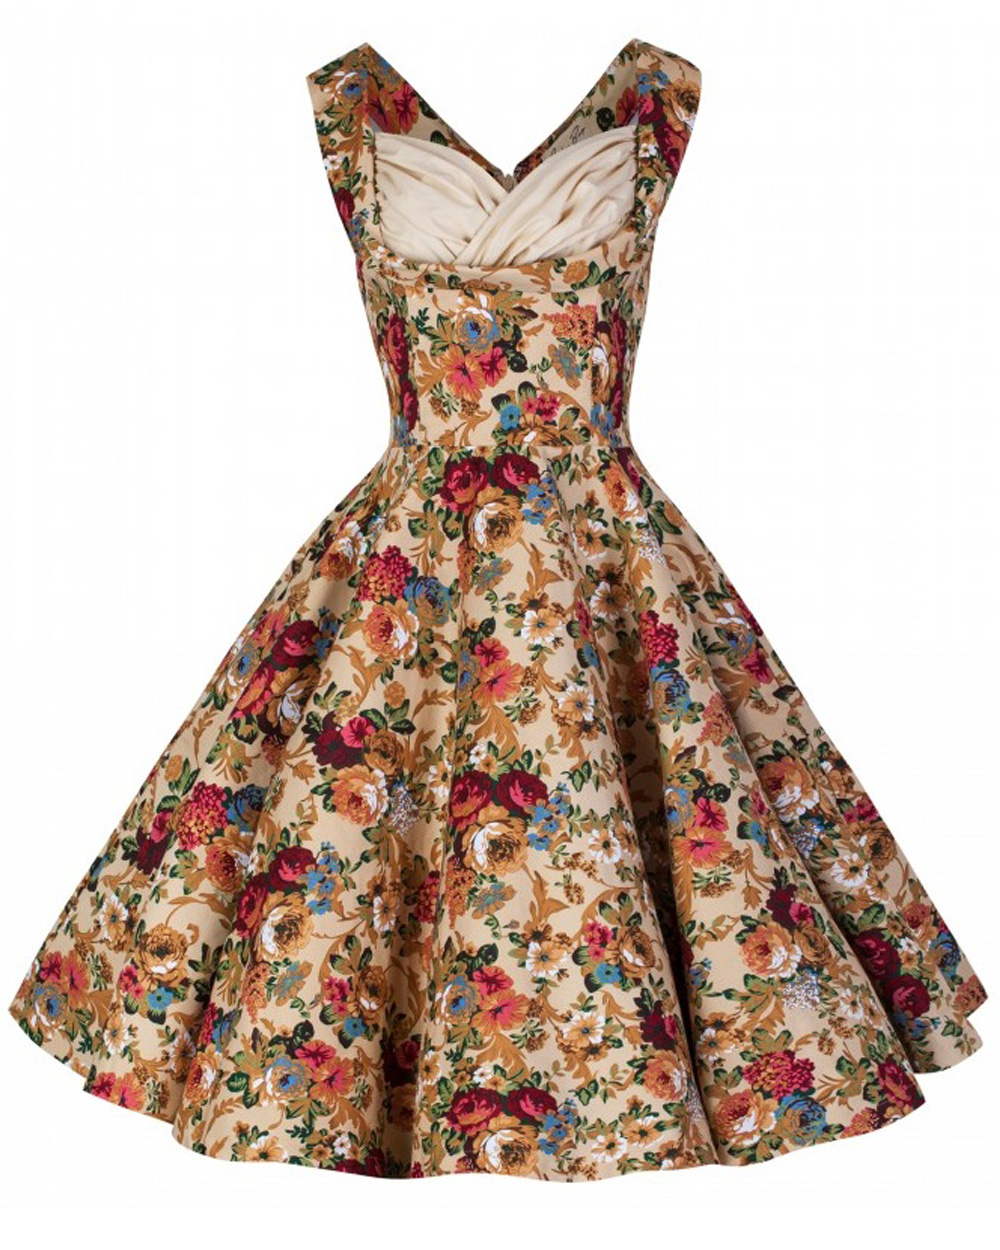 Rkb1 Lindy Bop Ophelia Beige 50s Rockabilly Vintage Floral Swing Dress Plus Size Ebay